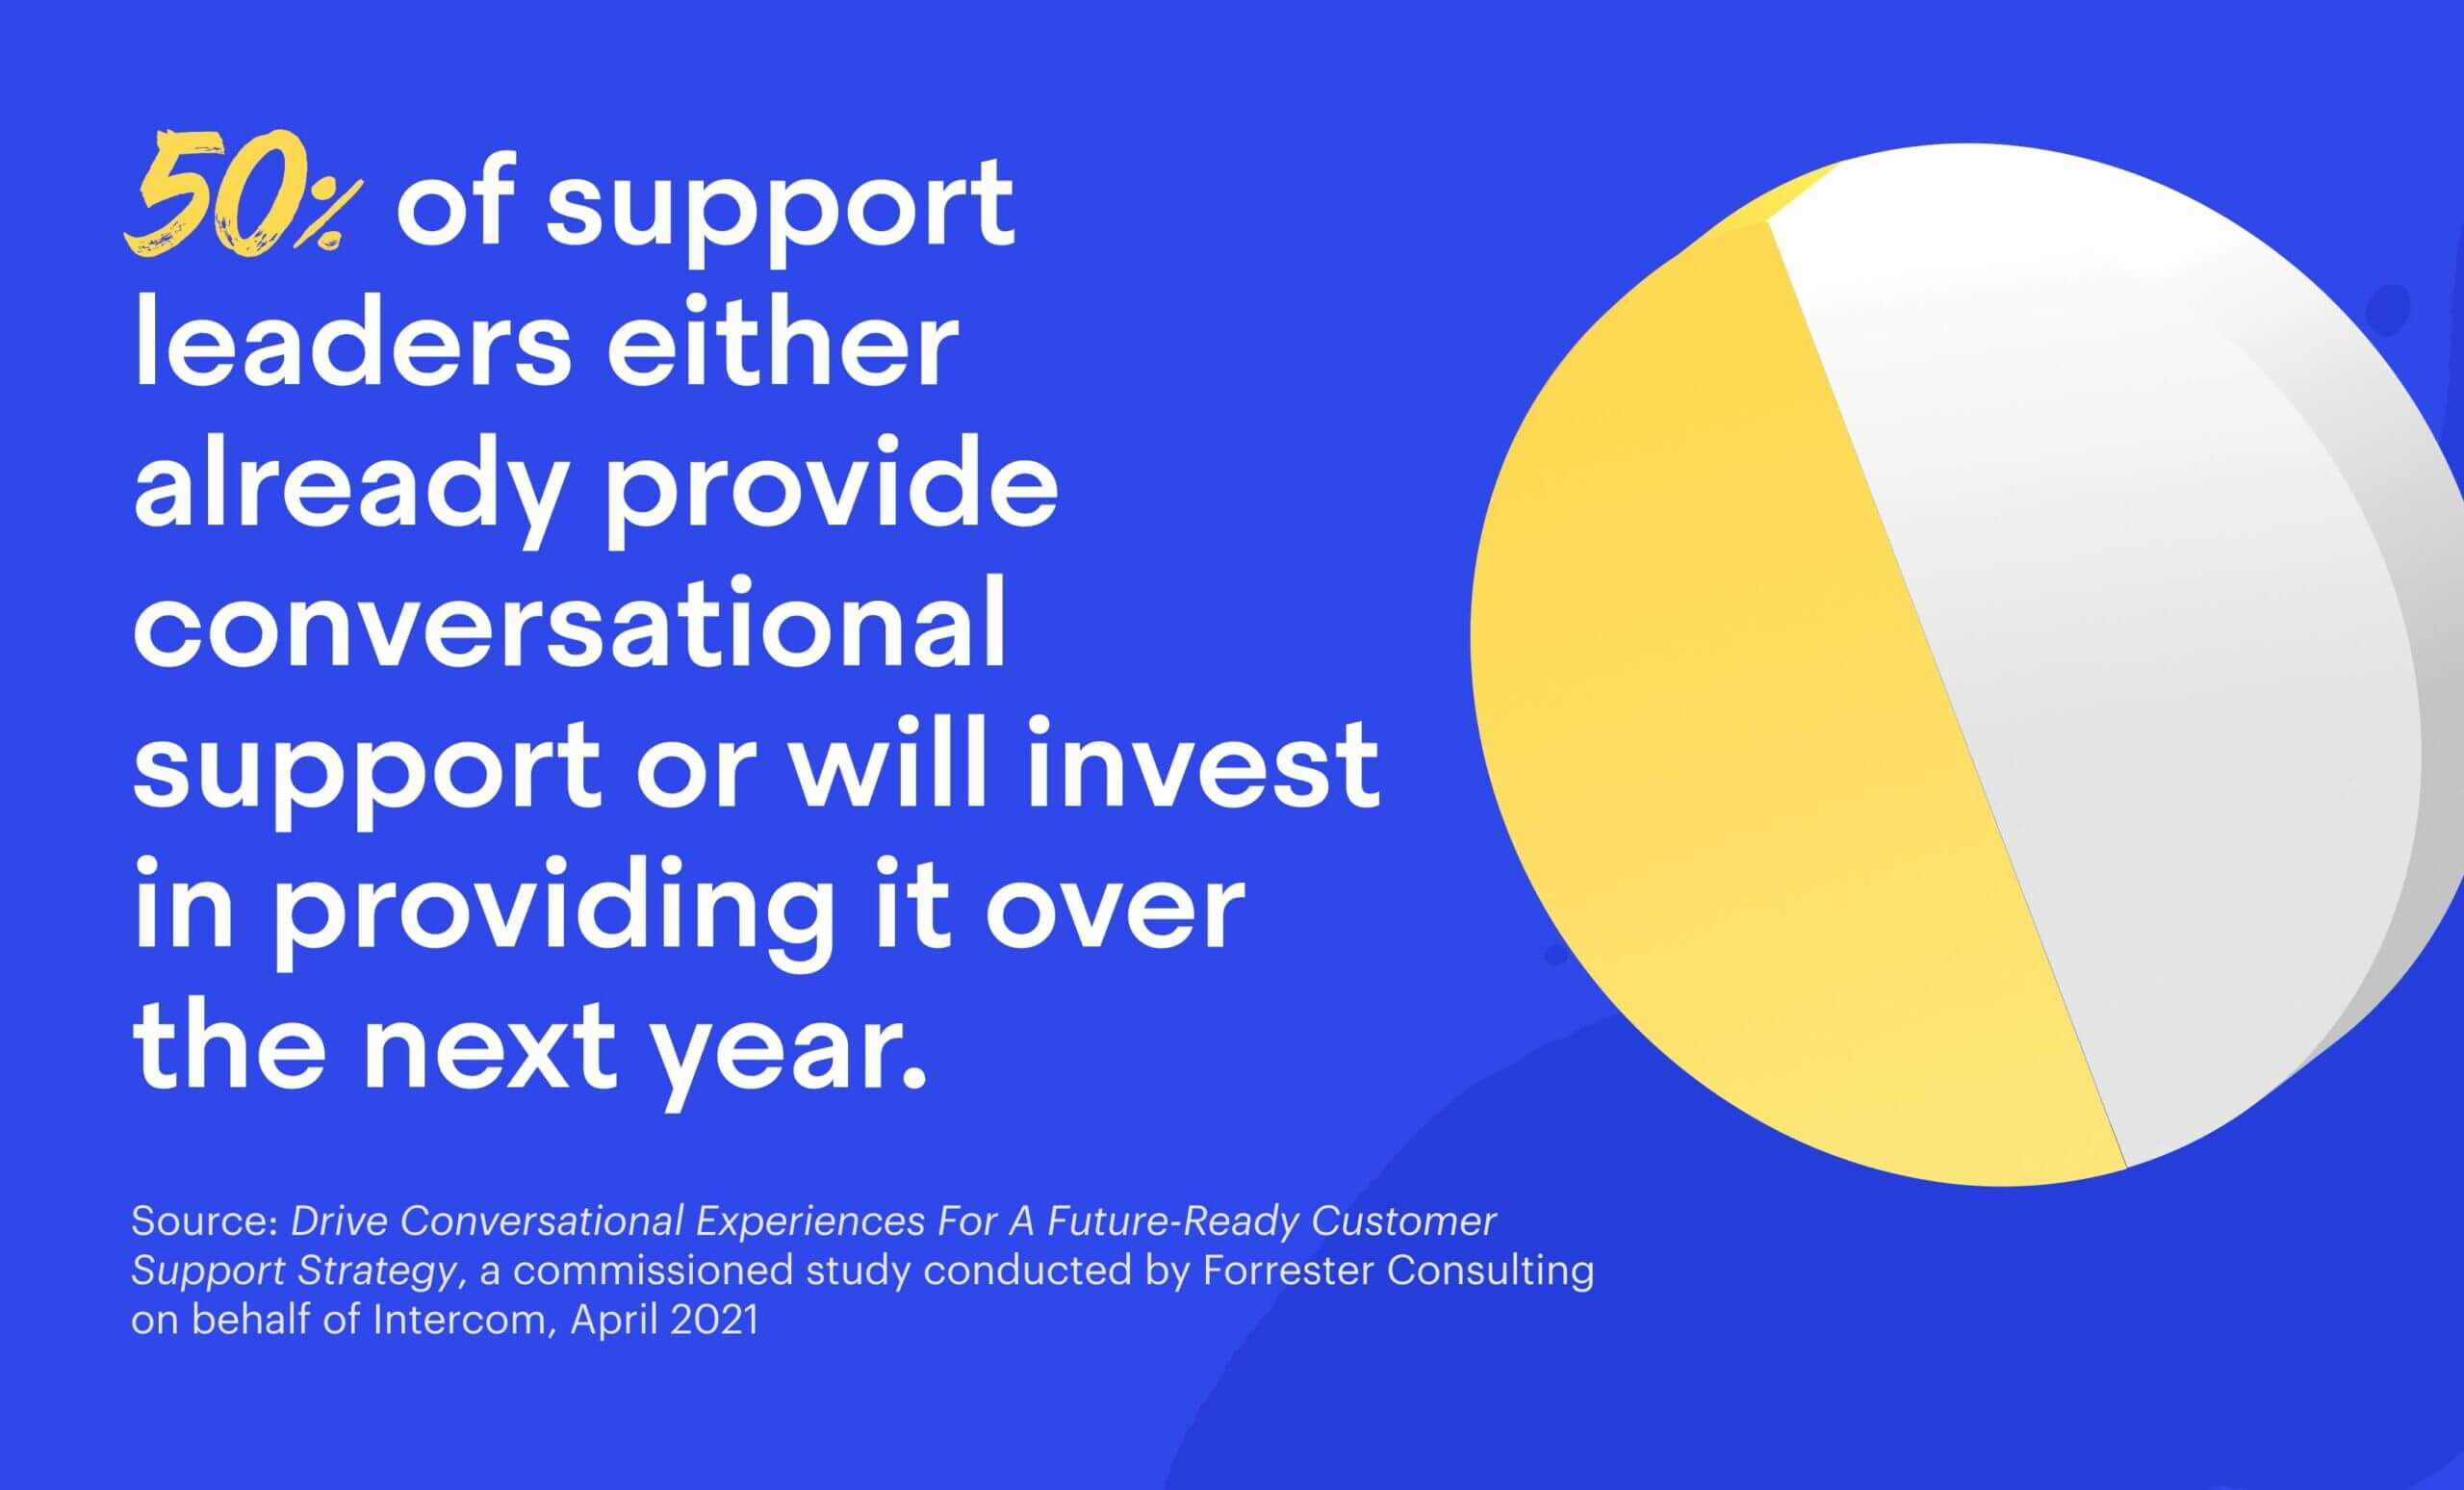 50% of support leaders either already provide conversational support or will invest in providing it over the next year.